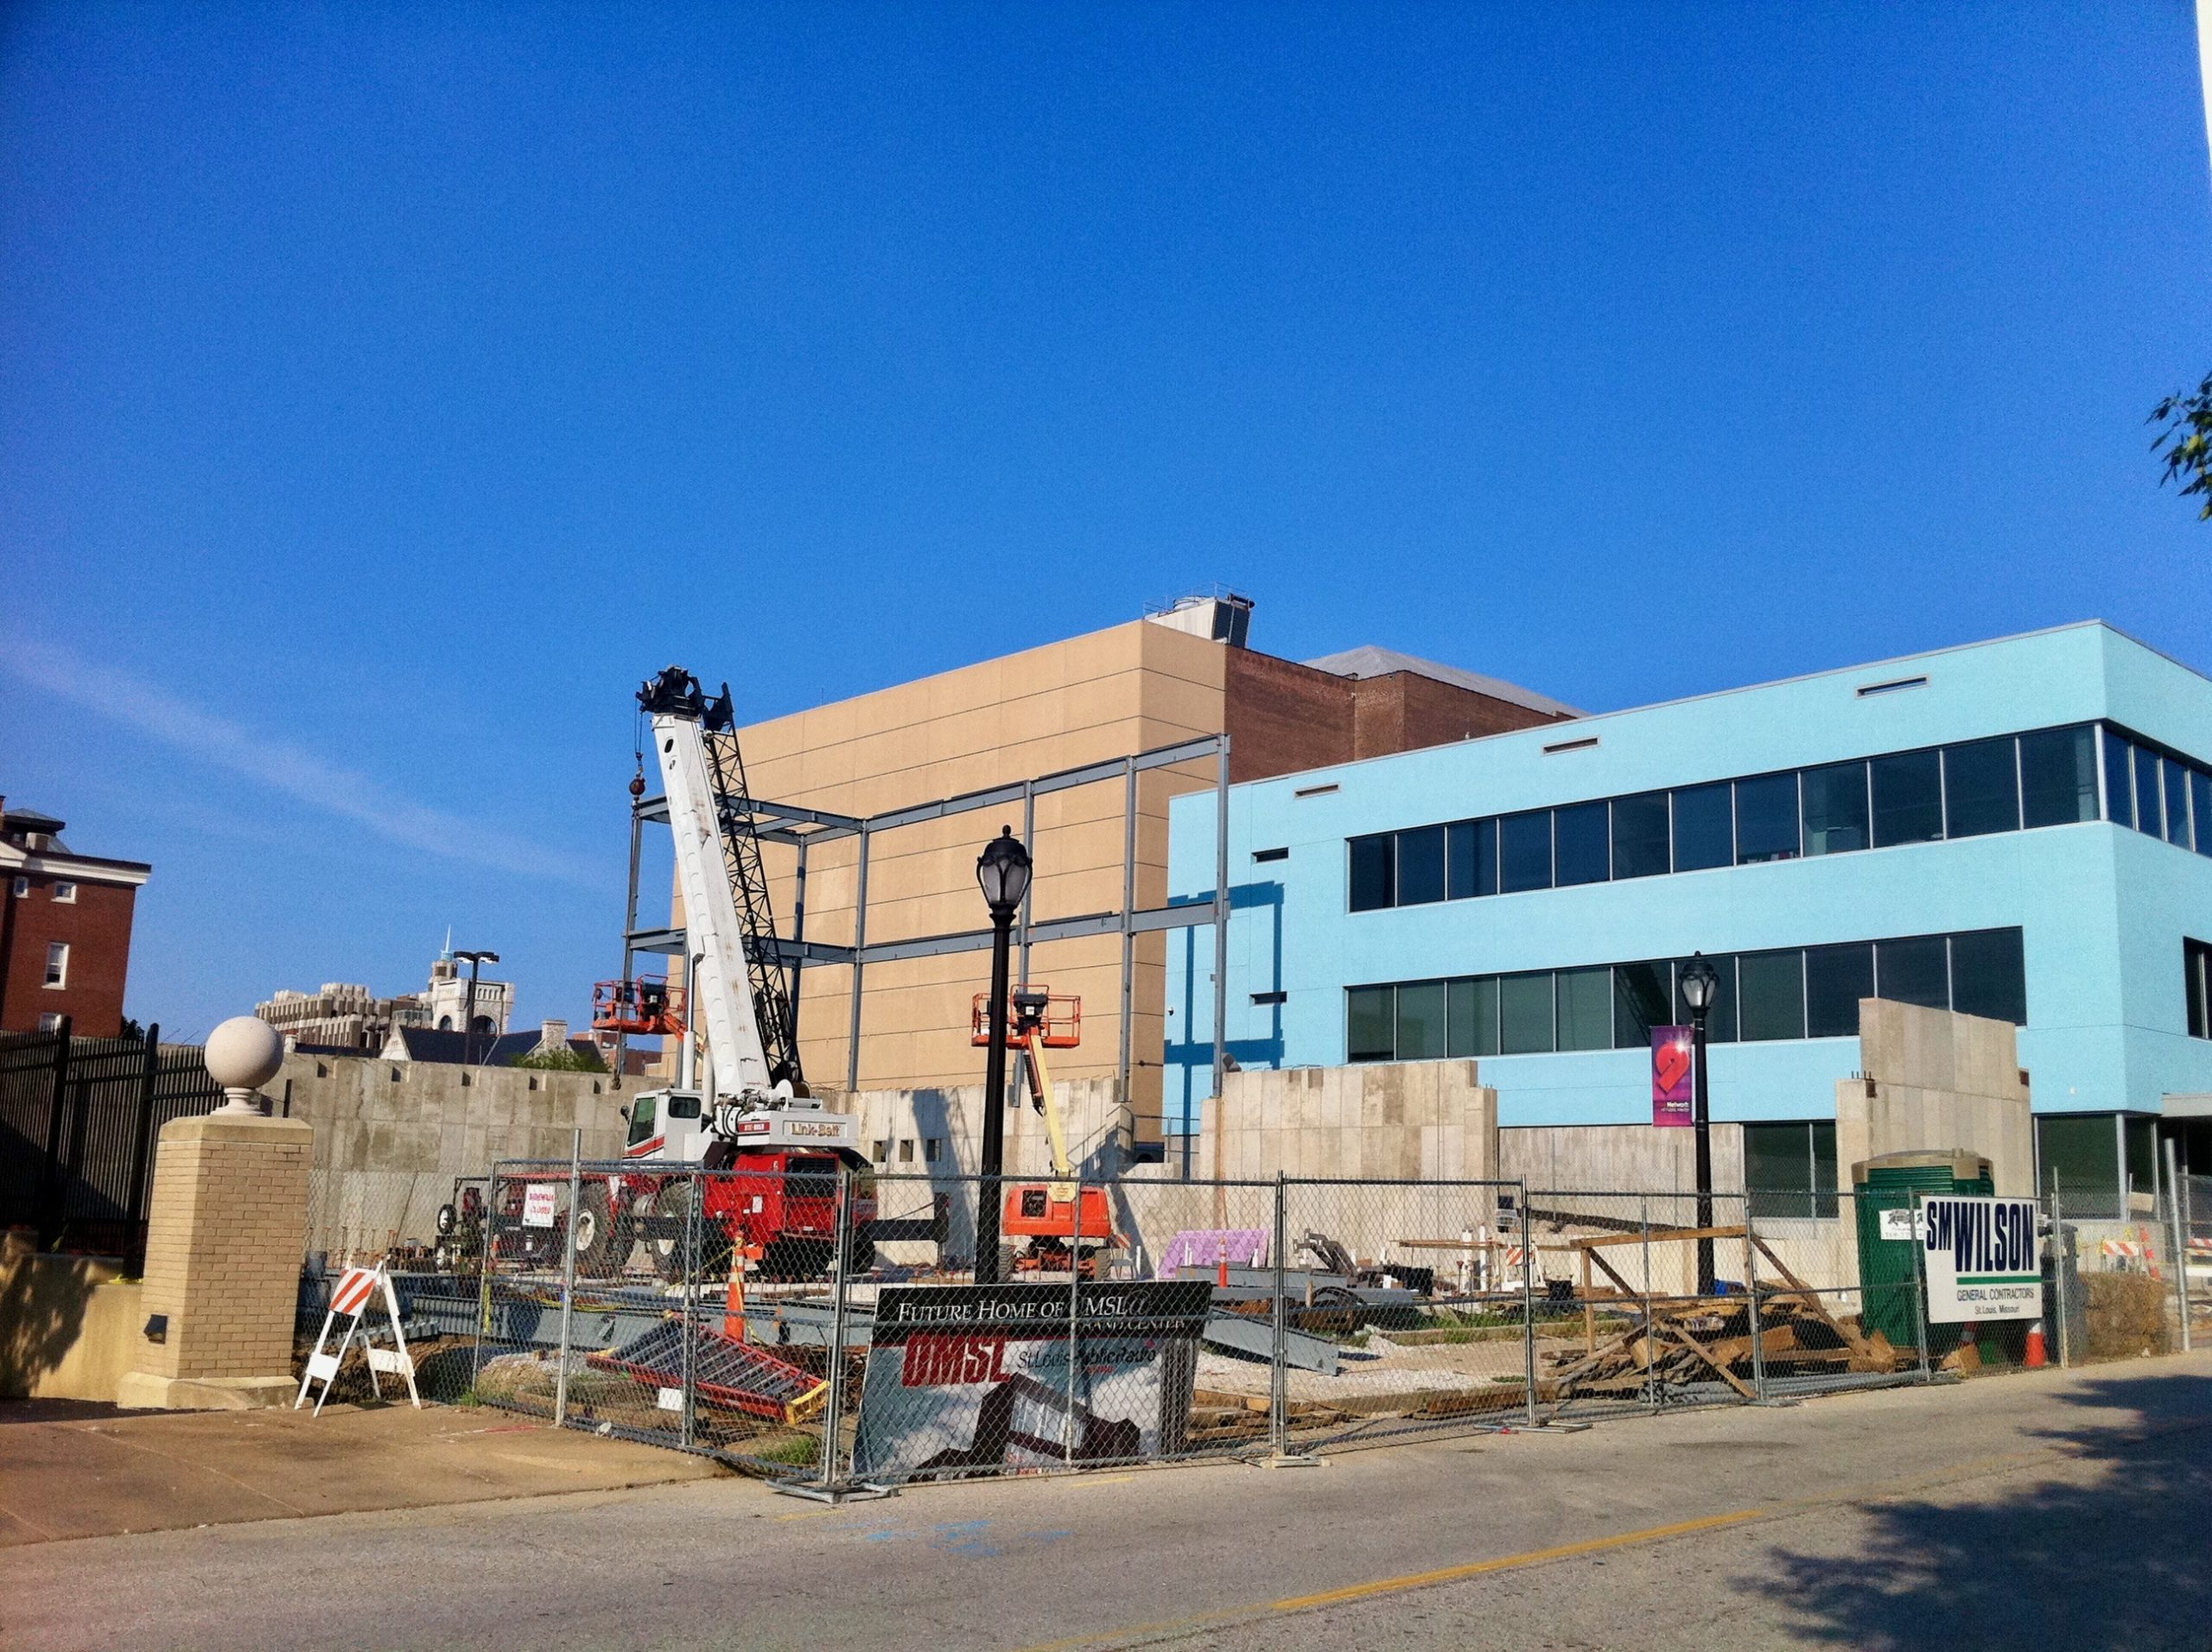 An image of a construction site, the future home of St. Louis Public Radio. There are some concrete walls and the start of a steel skeleton.